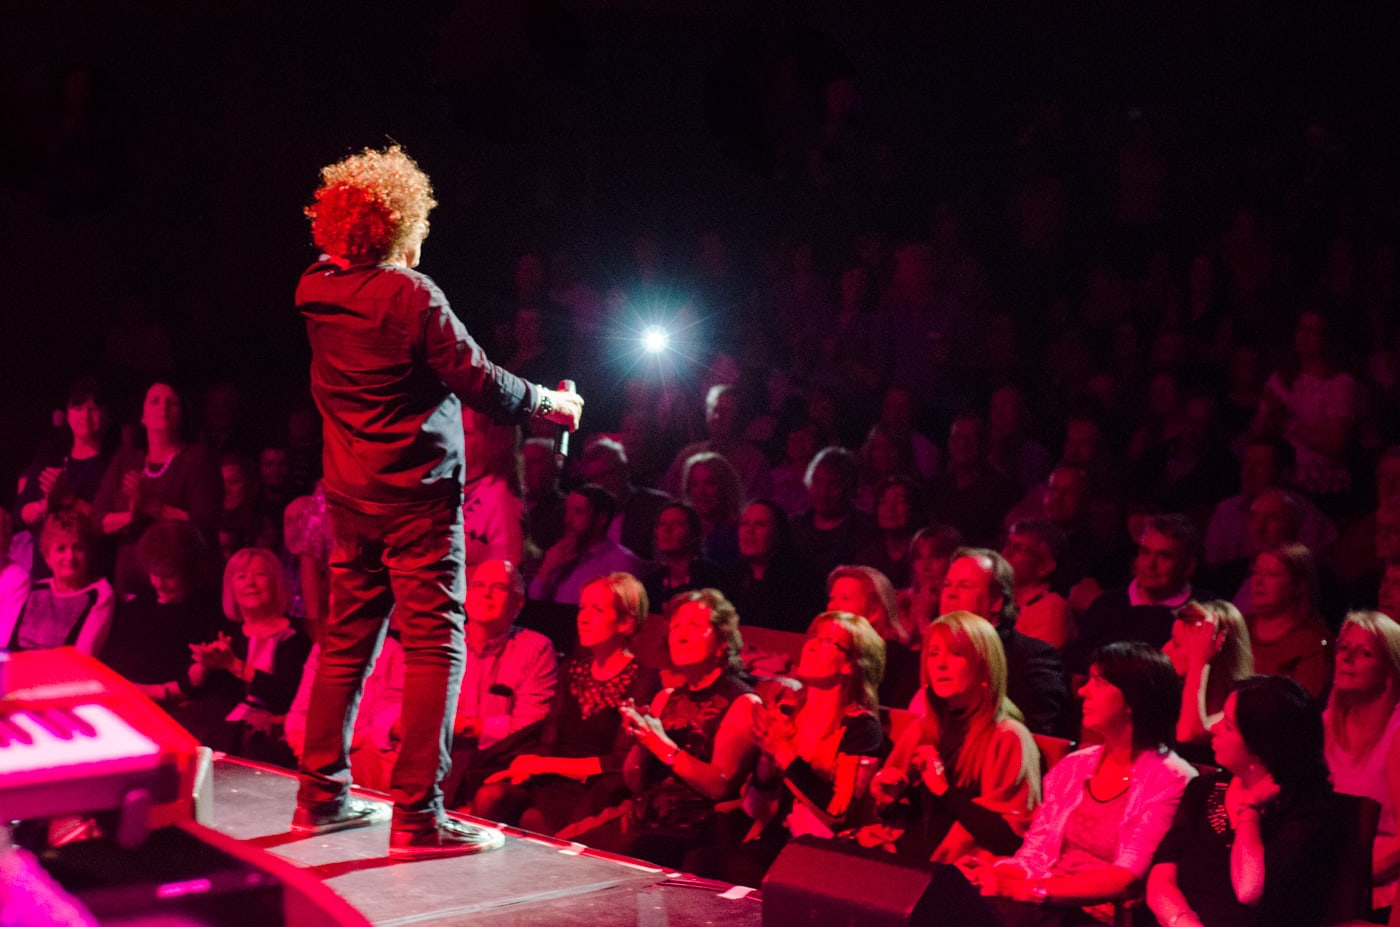 Leo Sayer at Bord Gais Energy Theatre by Sean Smyth (16-10-15) (99 of 129)